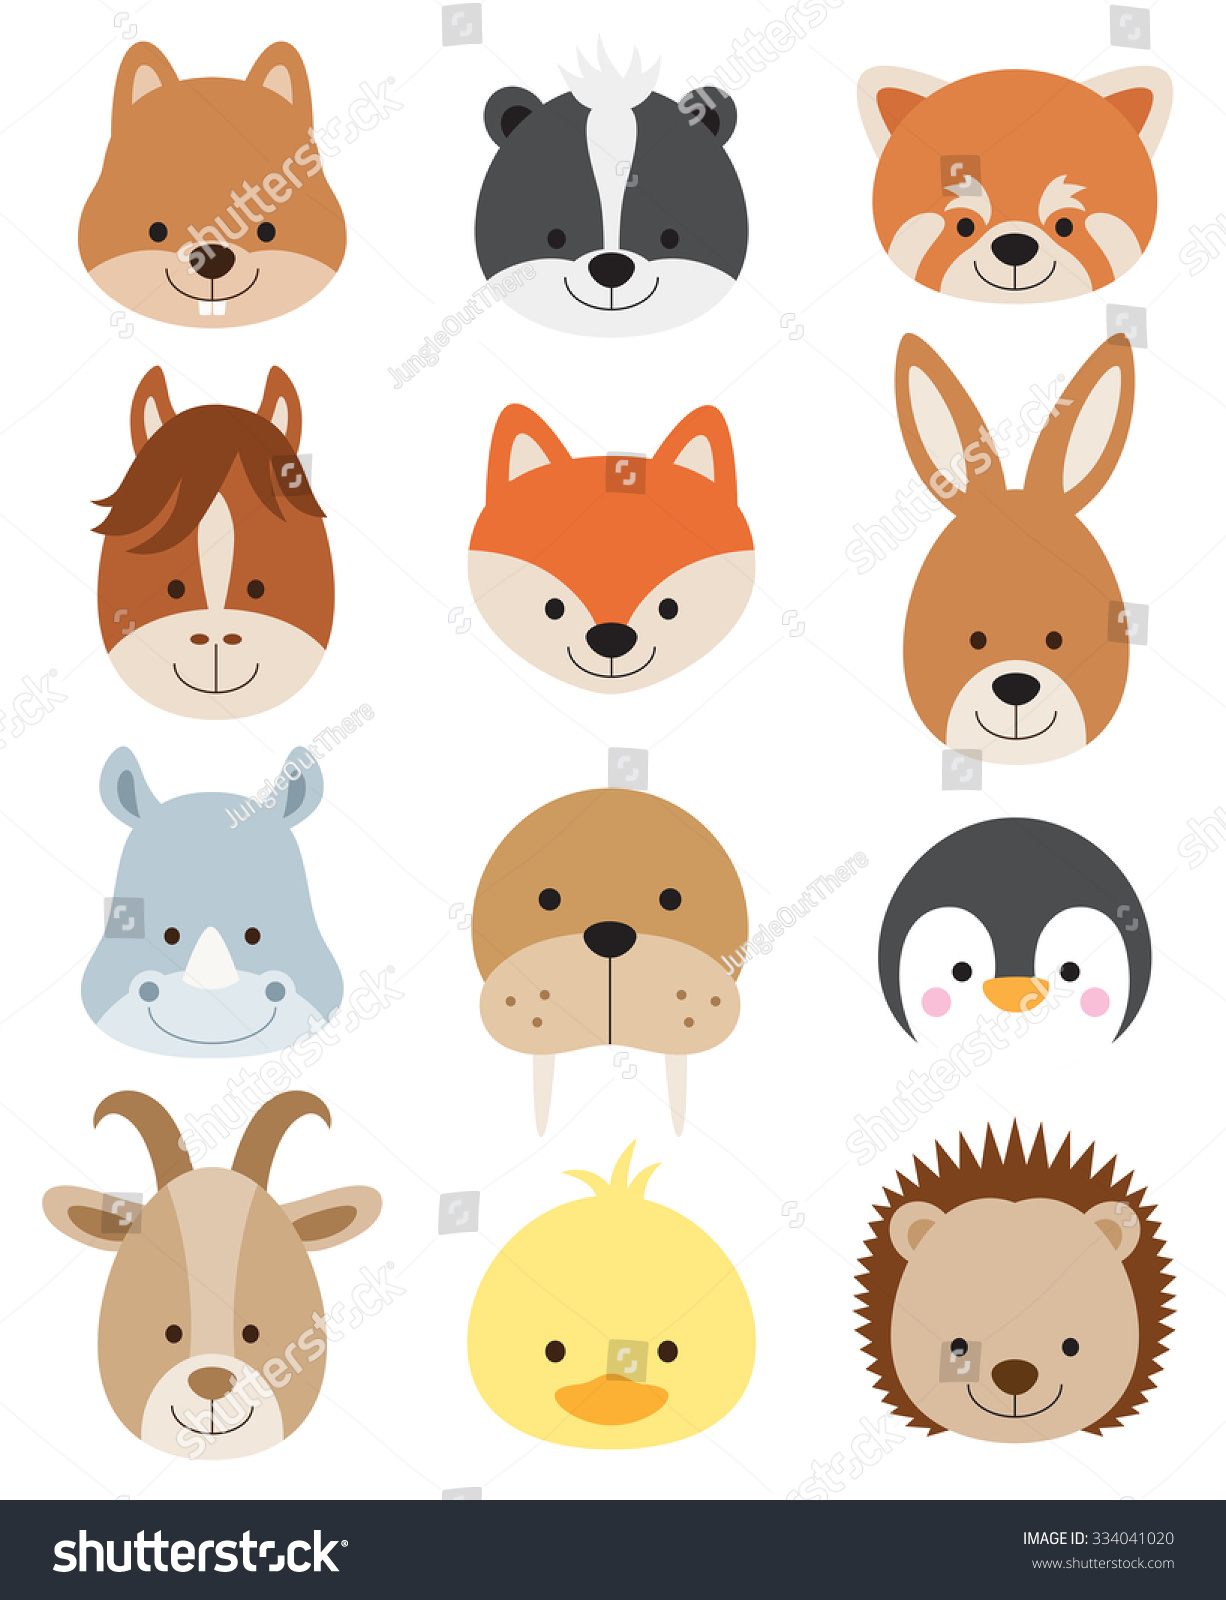 printable hedgehog puppets vector illustration of animal faces including squirrel 2770